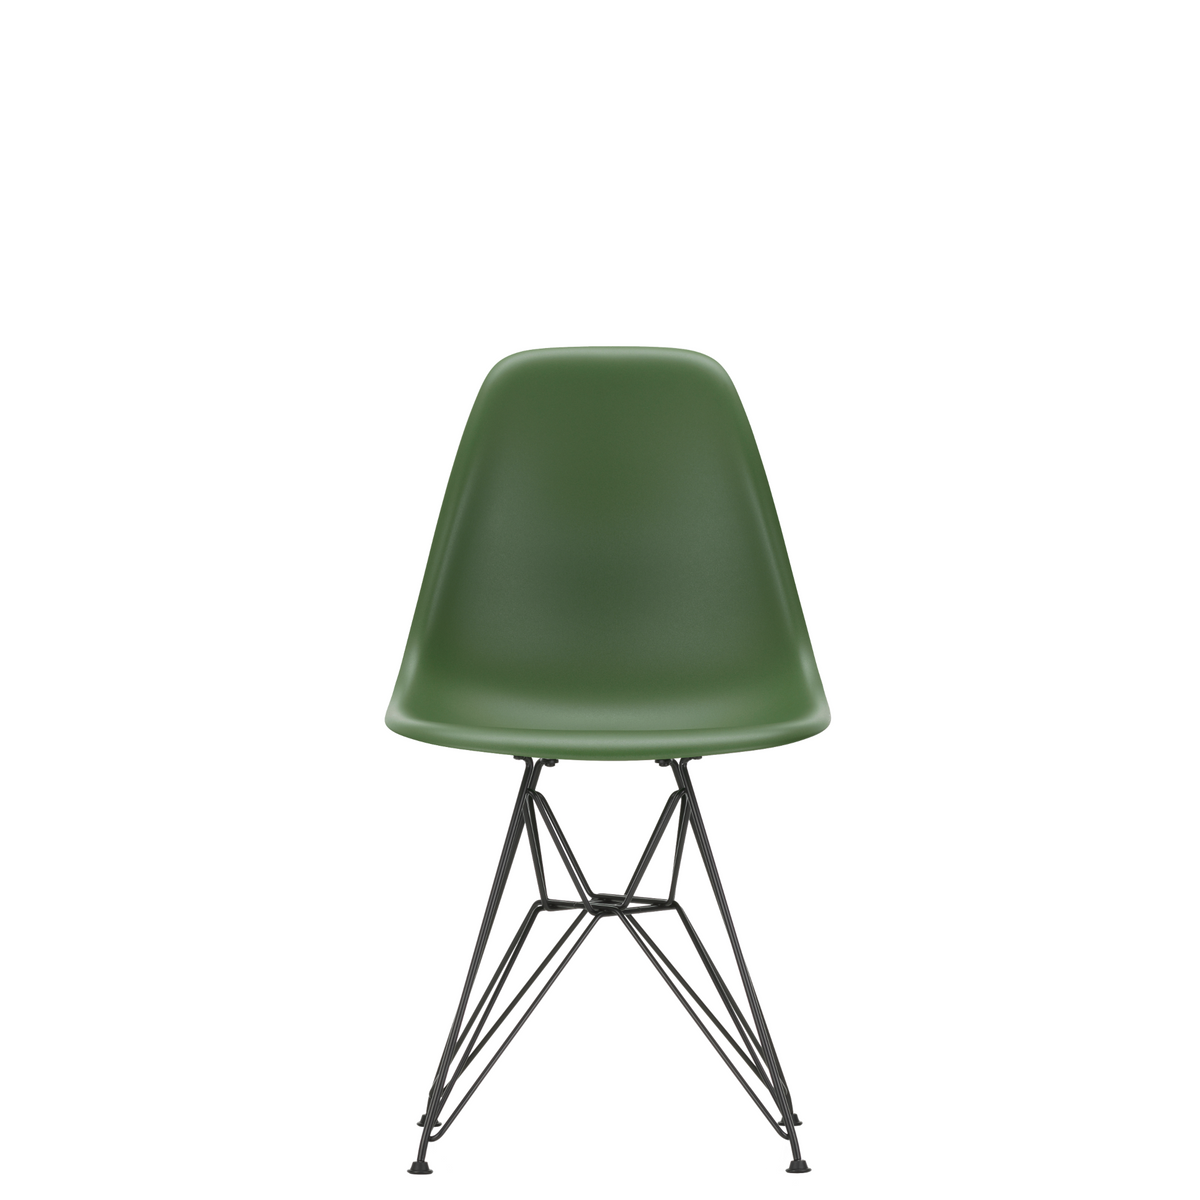 Vitra Eames Plastic Side Chair DSR Powder Coated for Outdoor Use Dark Forest Green Shell Black Powdercoated Base